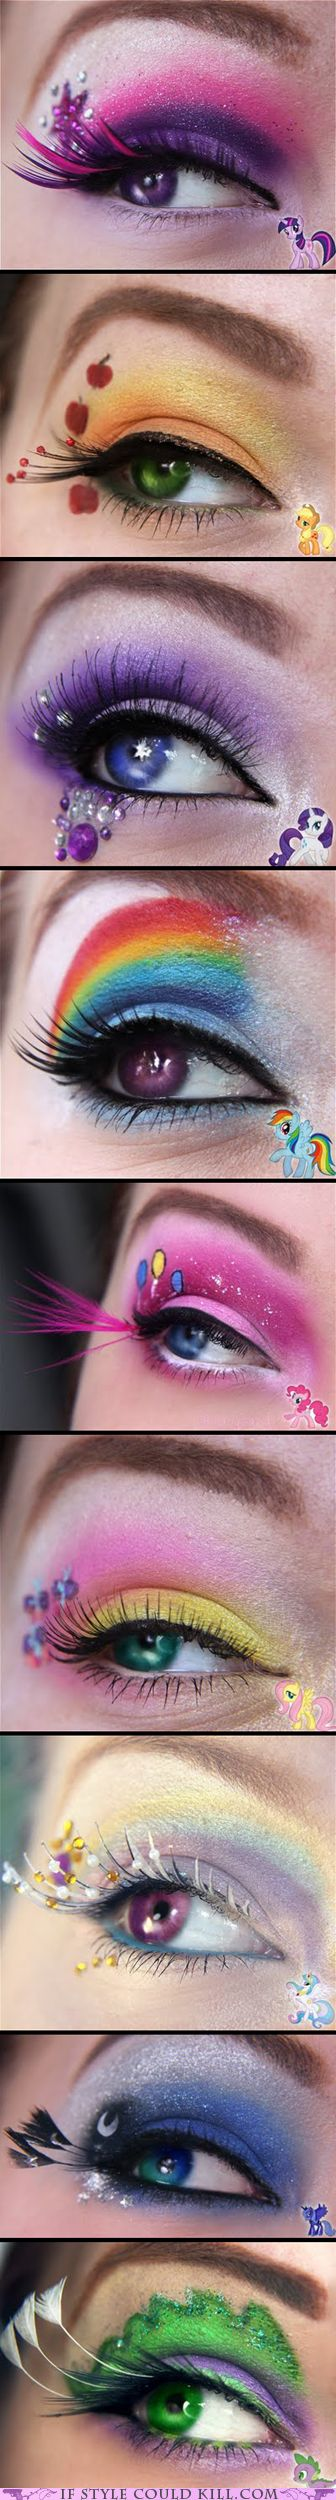 My Little Pony Eyes. So awesome!